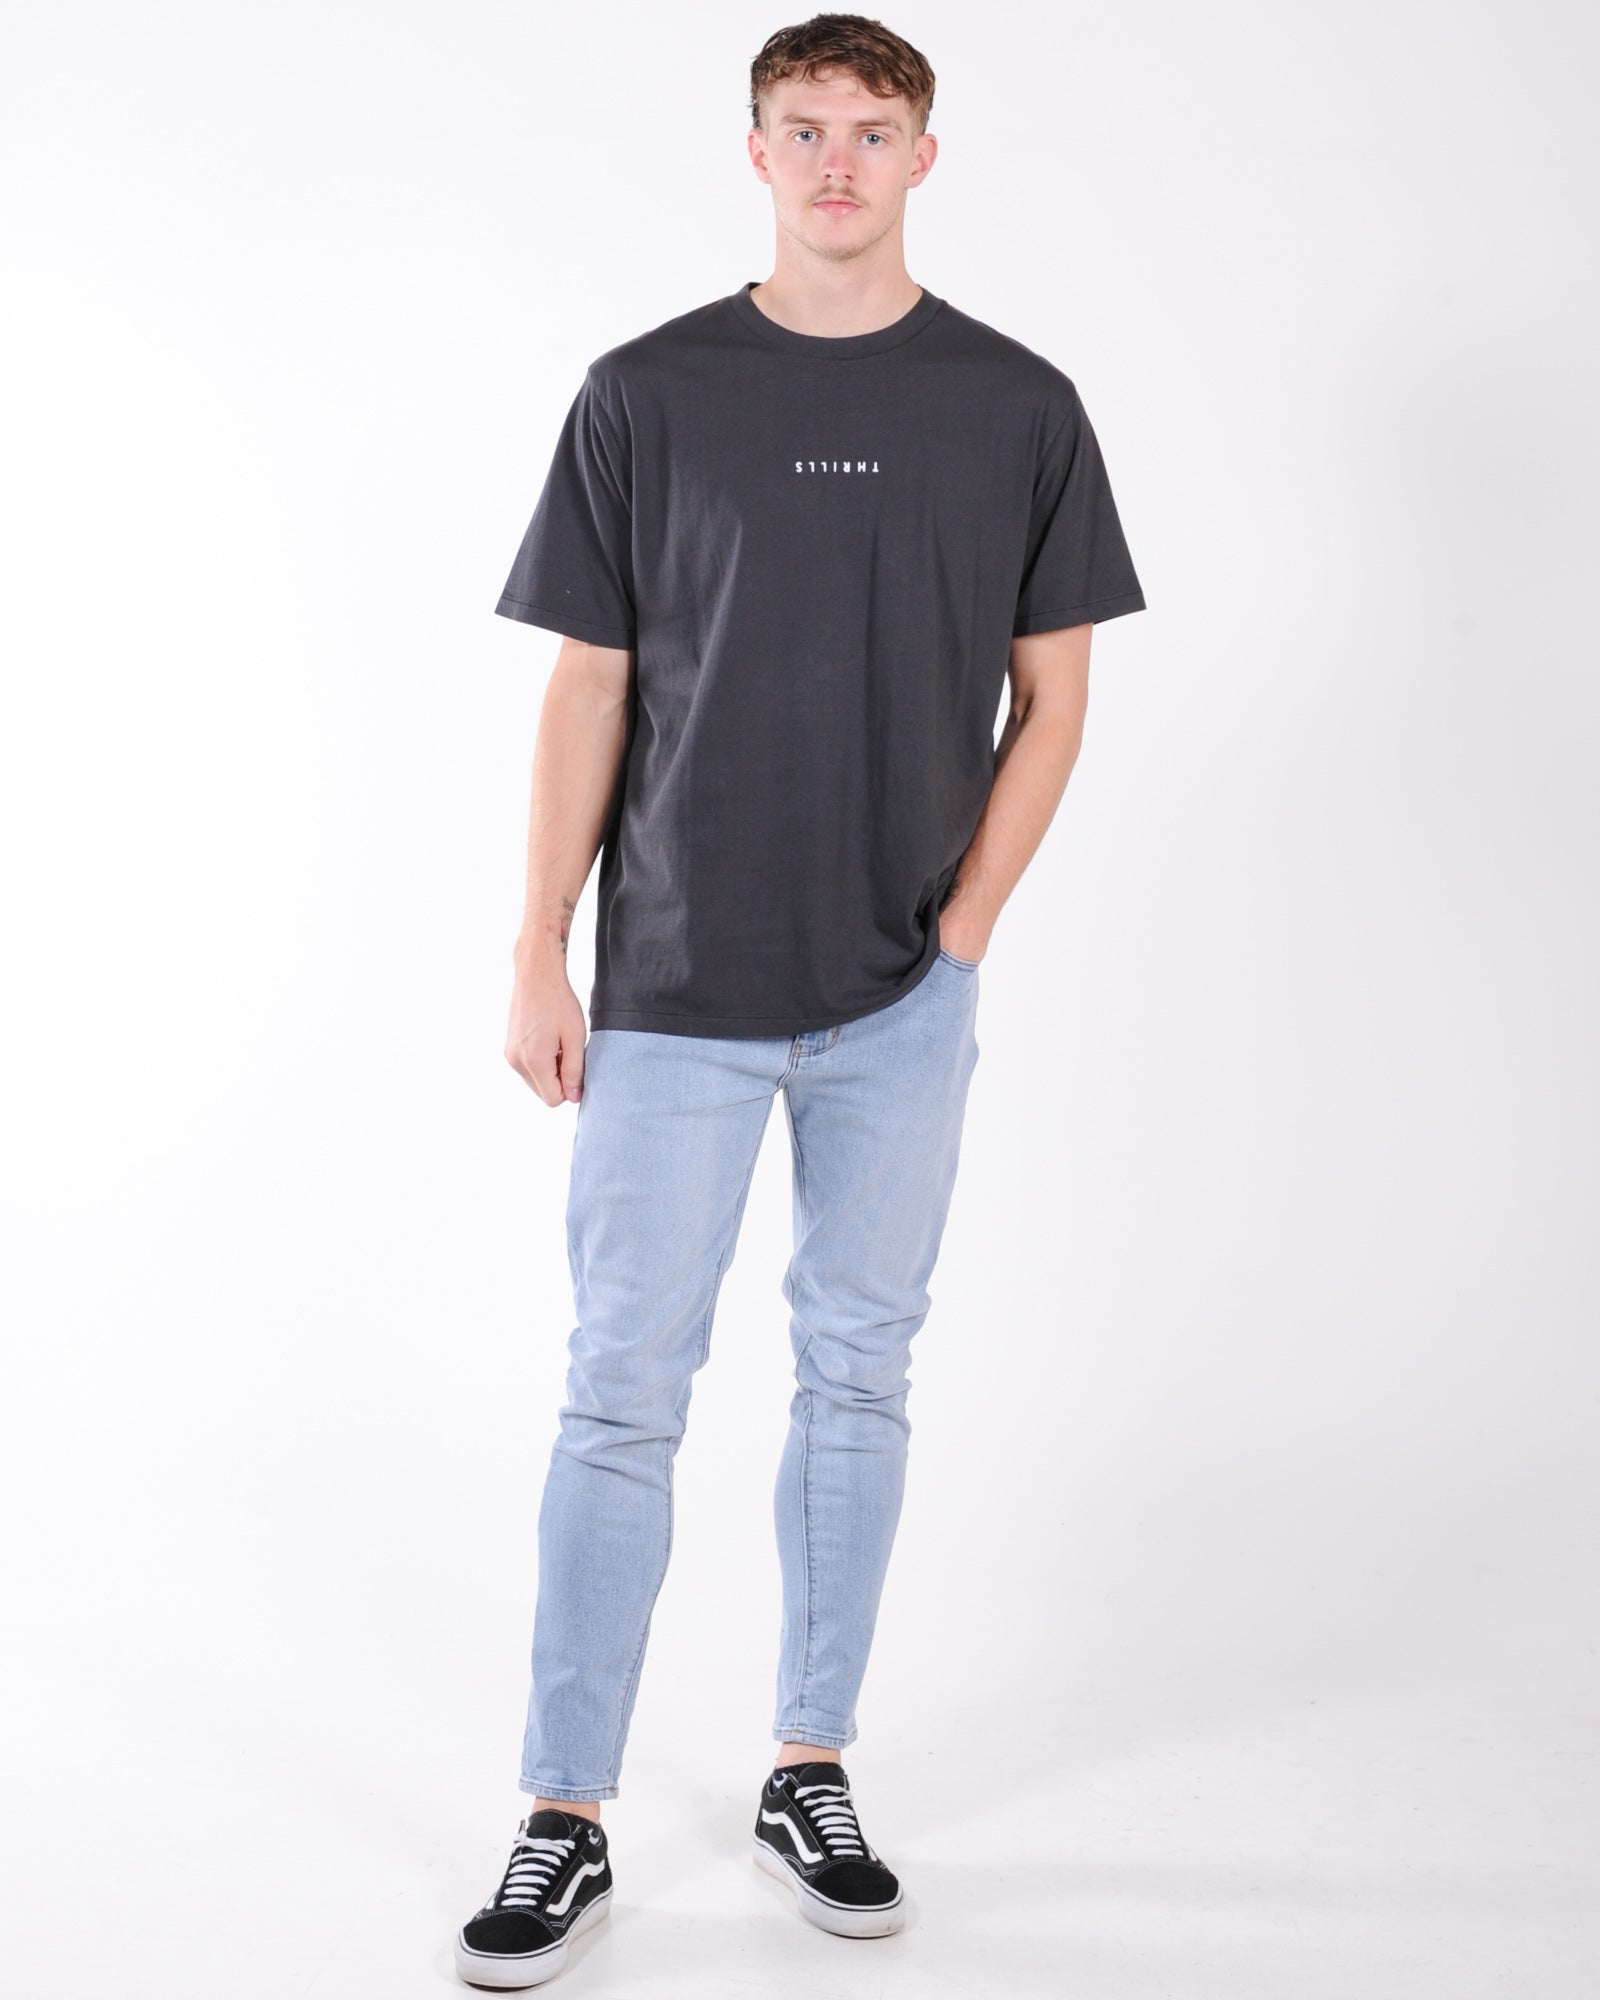 Thrills Minimal Thrills Merch Fit Tee - Heritage Black